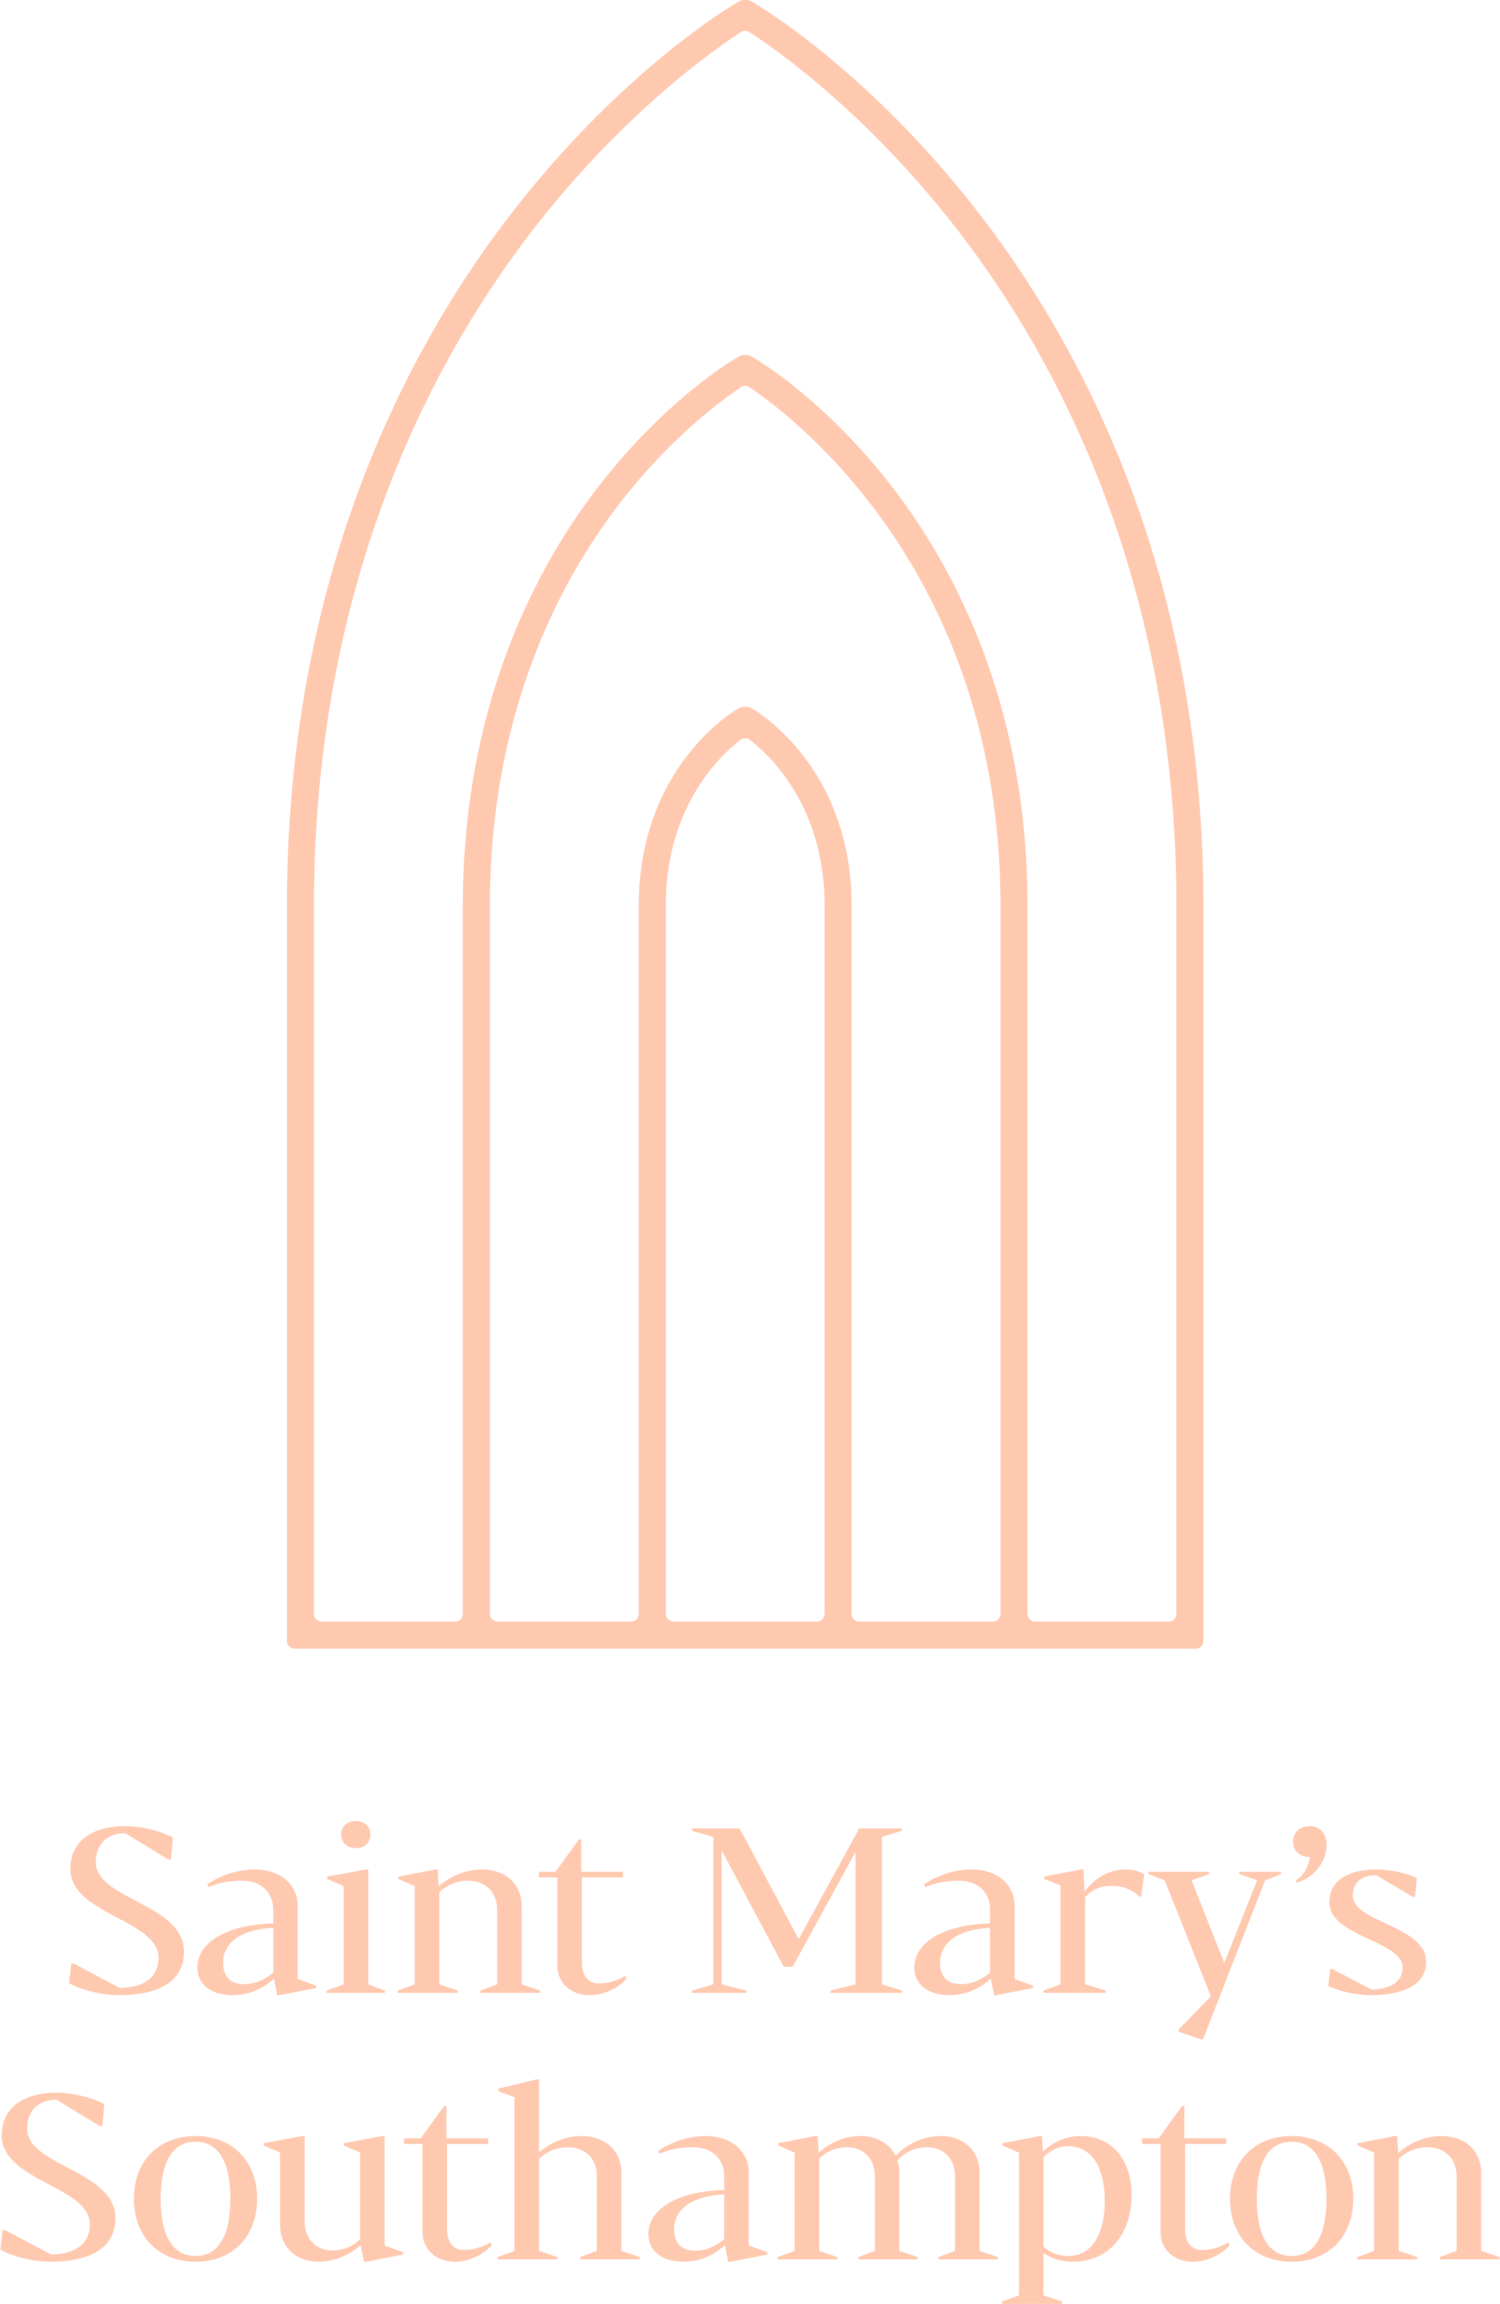 Saint Mary's Southampton